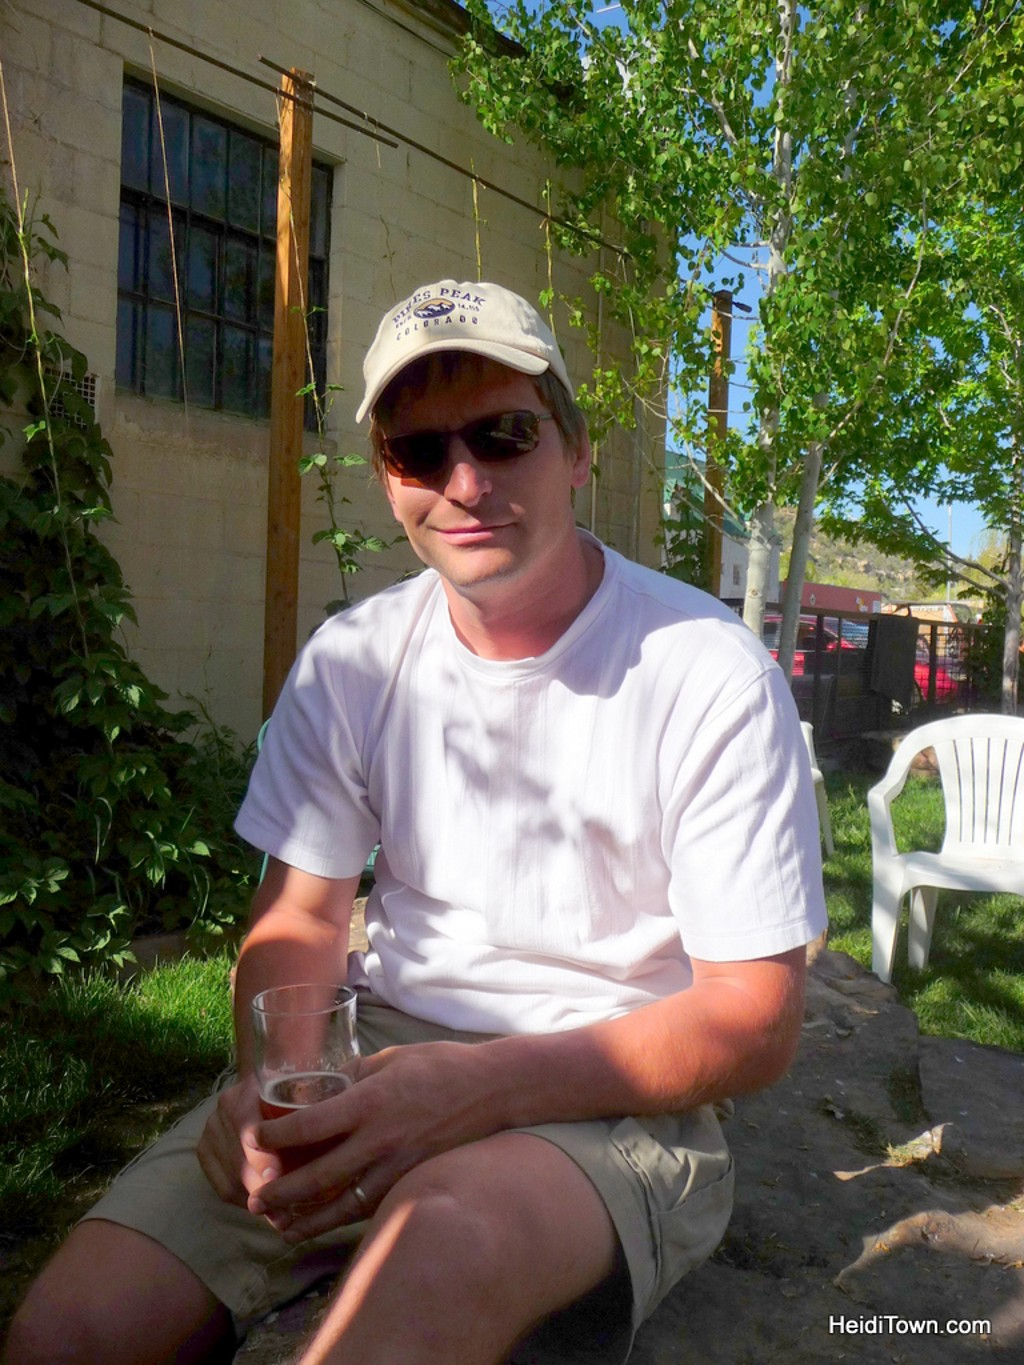 Ryan enjoying a beer at Dolores River Brewing after a day of exploring Mesa Verde. HeidiTown.com